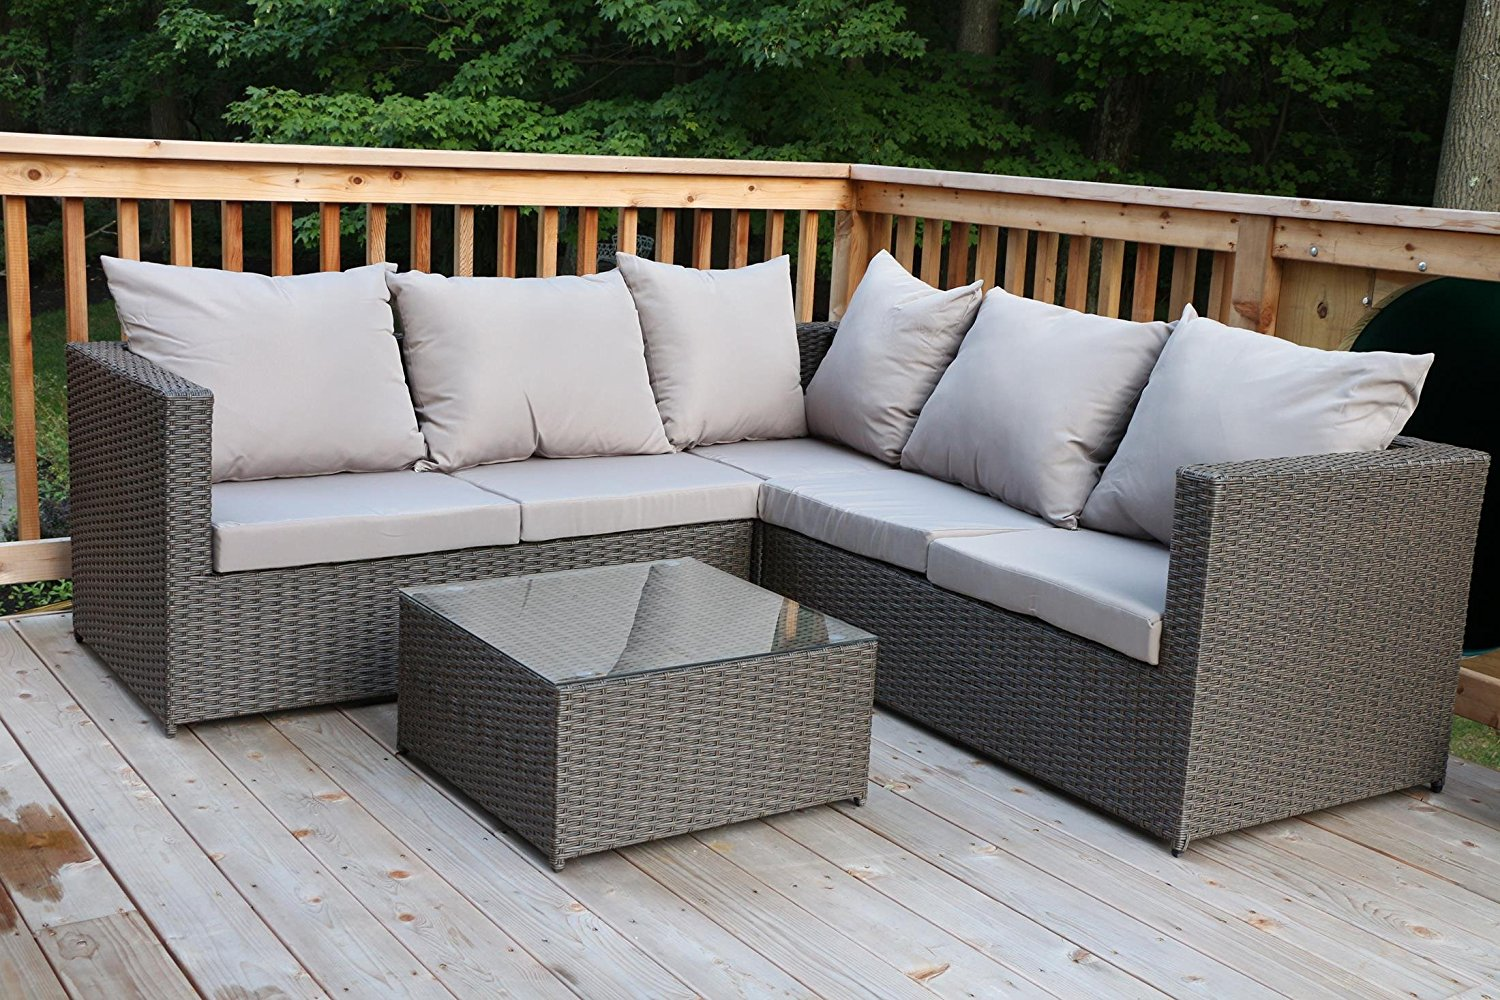 Oliver Smith - Large 4 Pc Modern Rattan Wiker Sectional Sofa Set Outdoor Patio Furniture - Fully Assembled - Aluminum Frame with Ottoman - 908 Grey